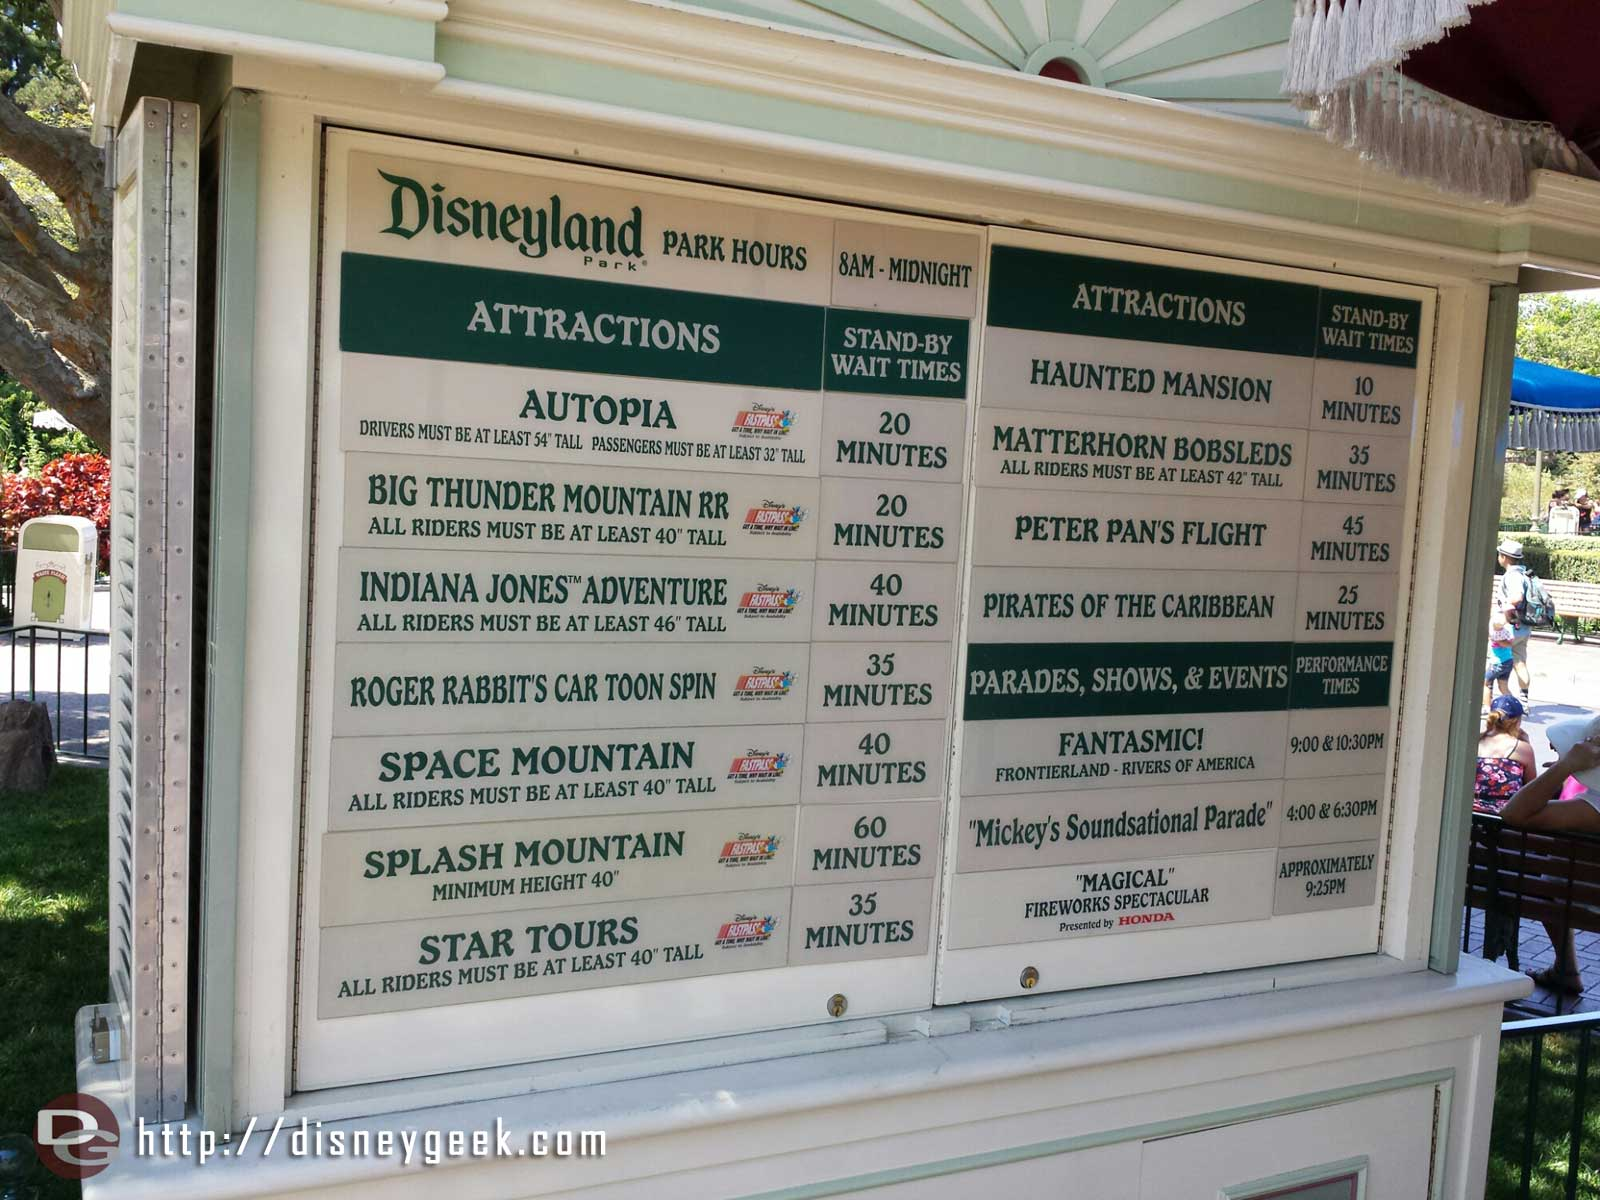 #Disneyland waits as of 3:00pm